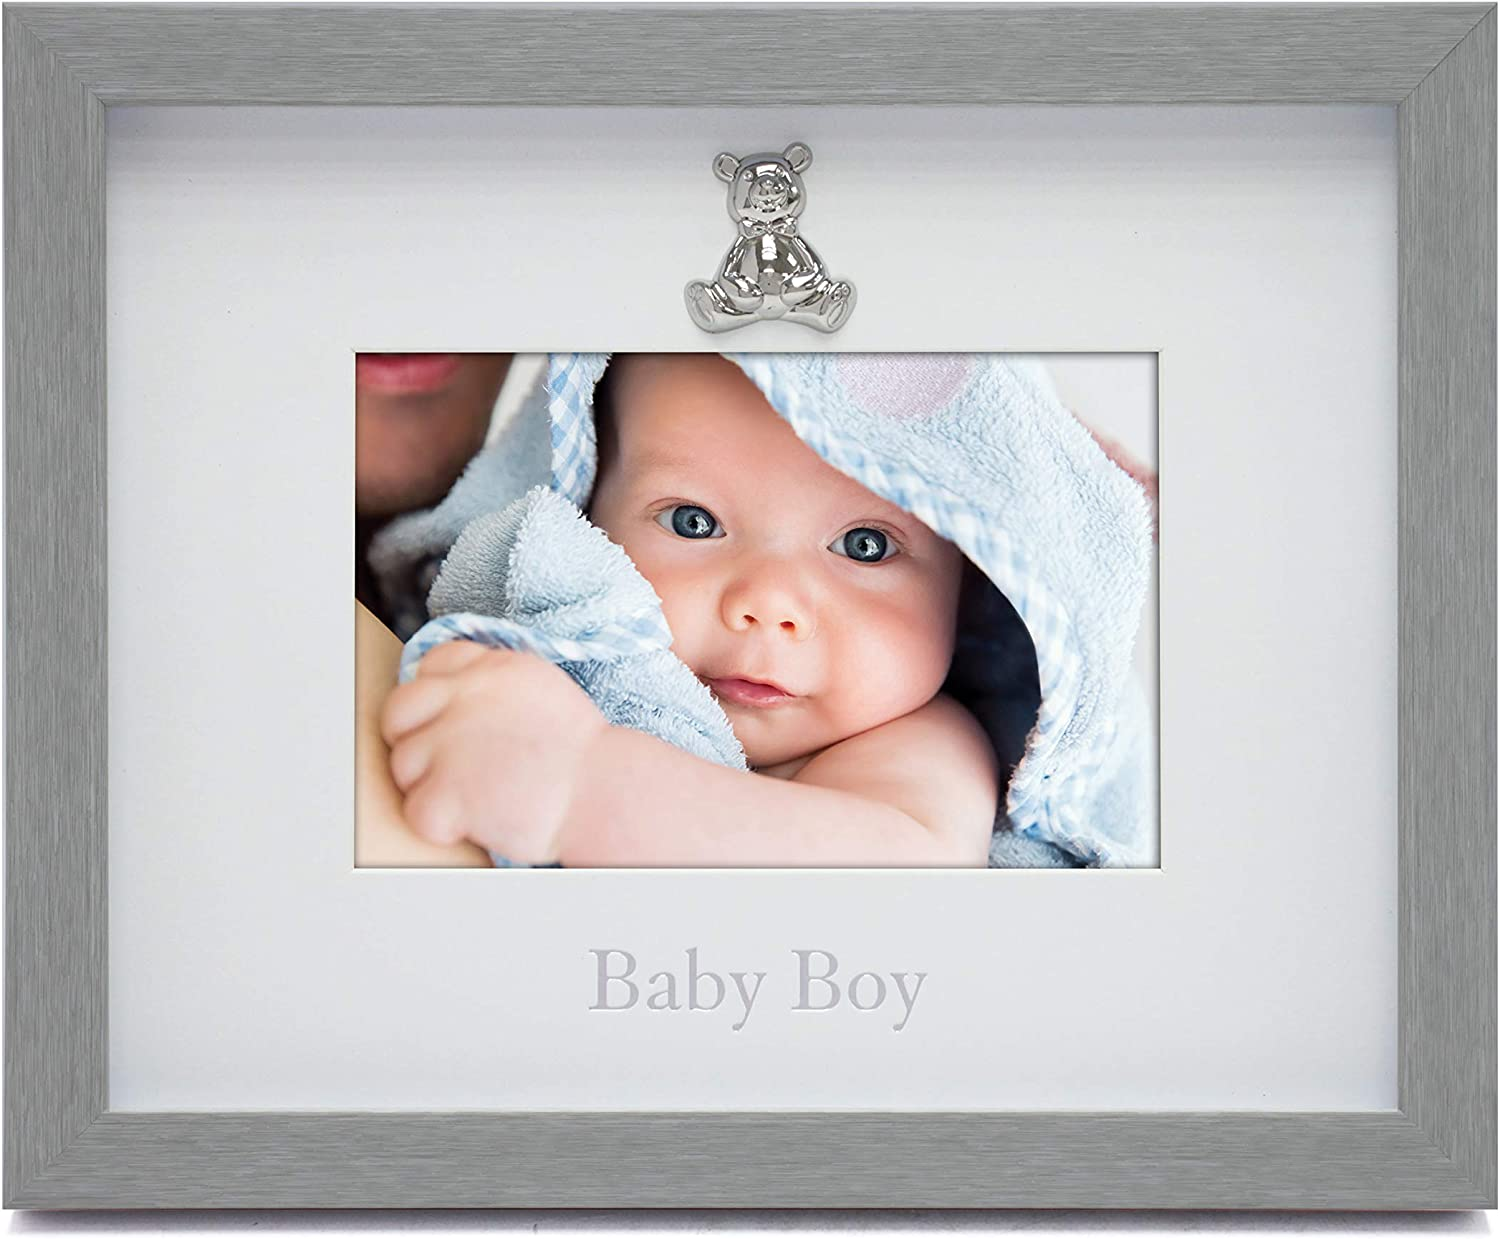 4x3, Silver - Baby Scan Metallic Silver and Brushed Satin Finish MIMOSA MOMENTS Ultrasound Clip Picture Frame